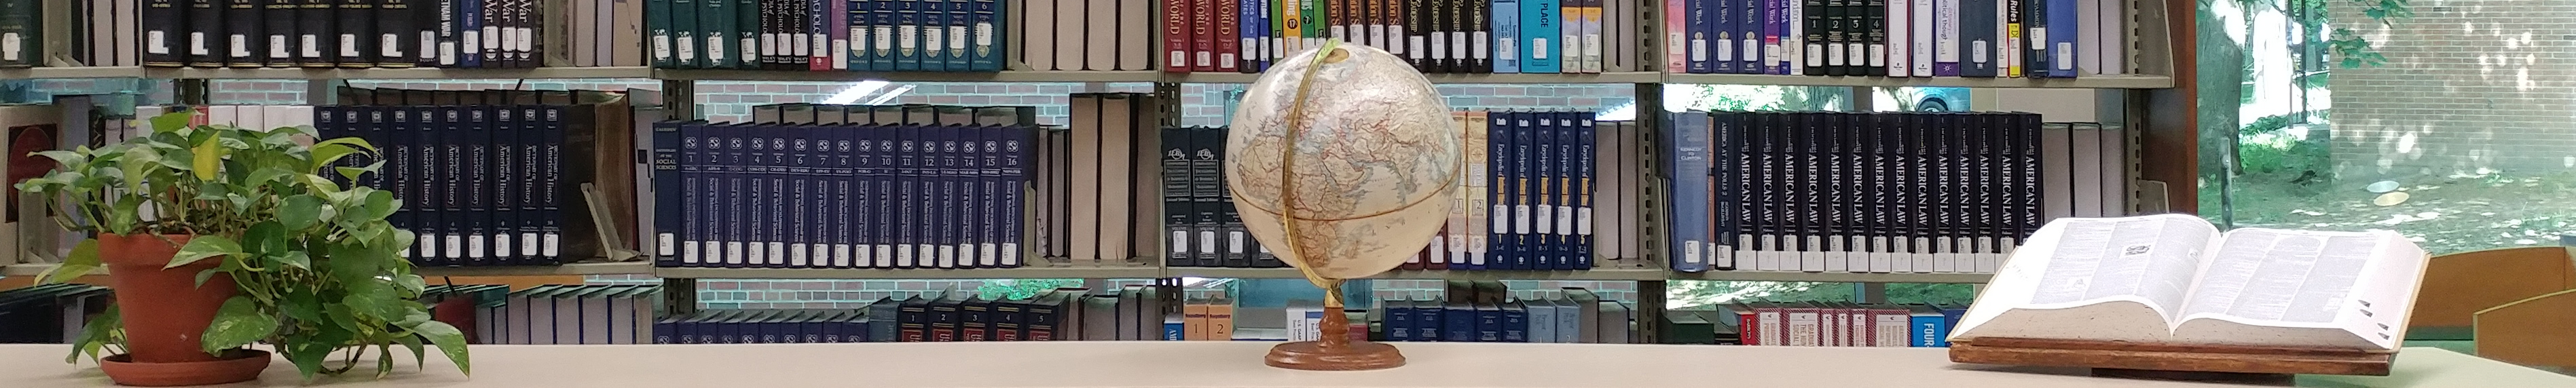 Library book shelves with plant, globe, and dictionary